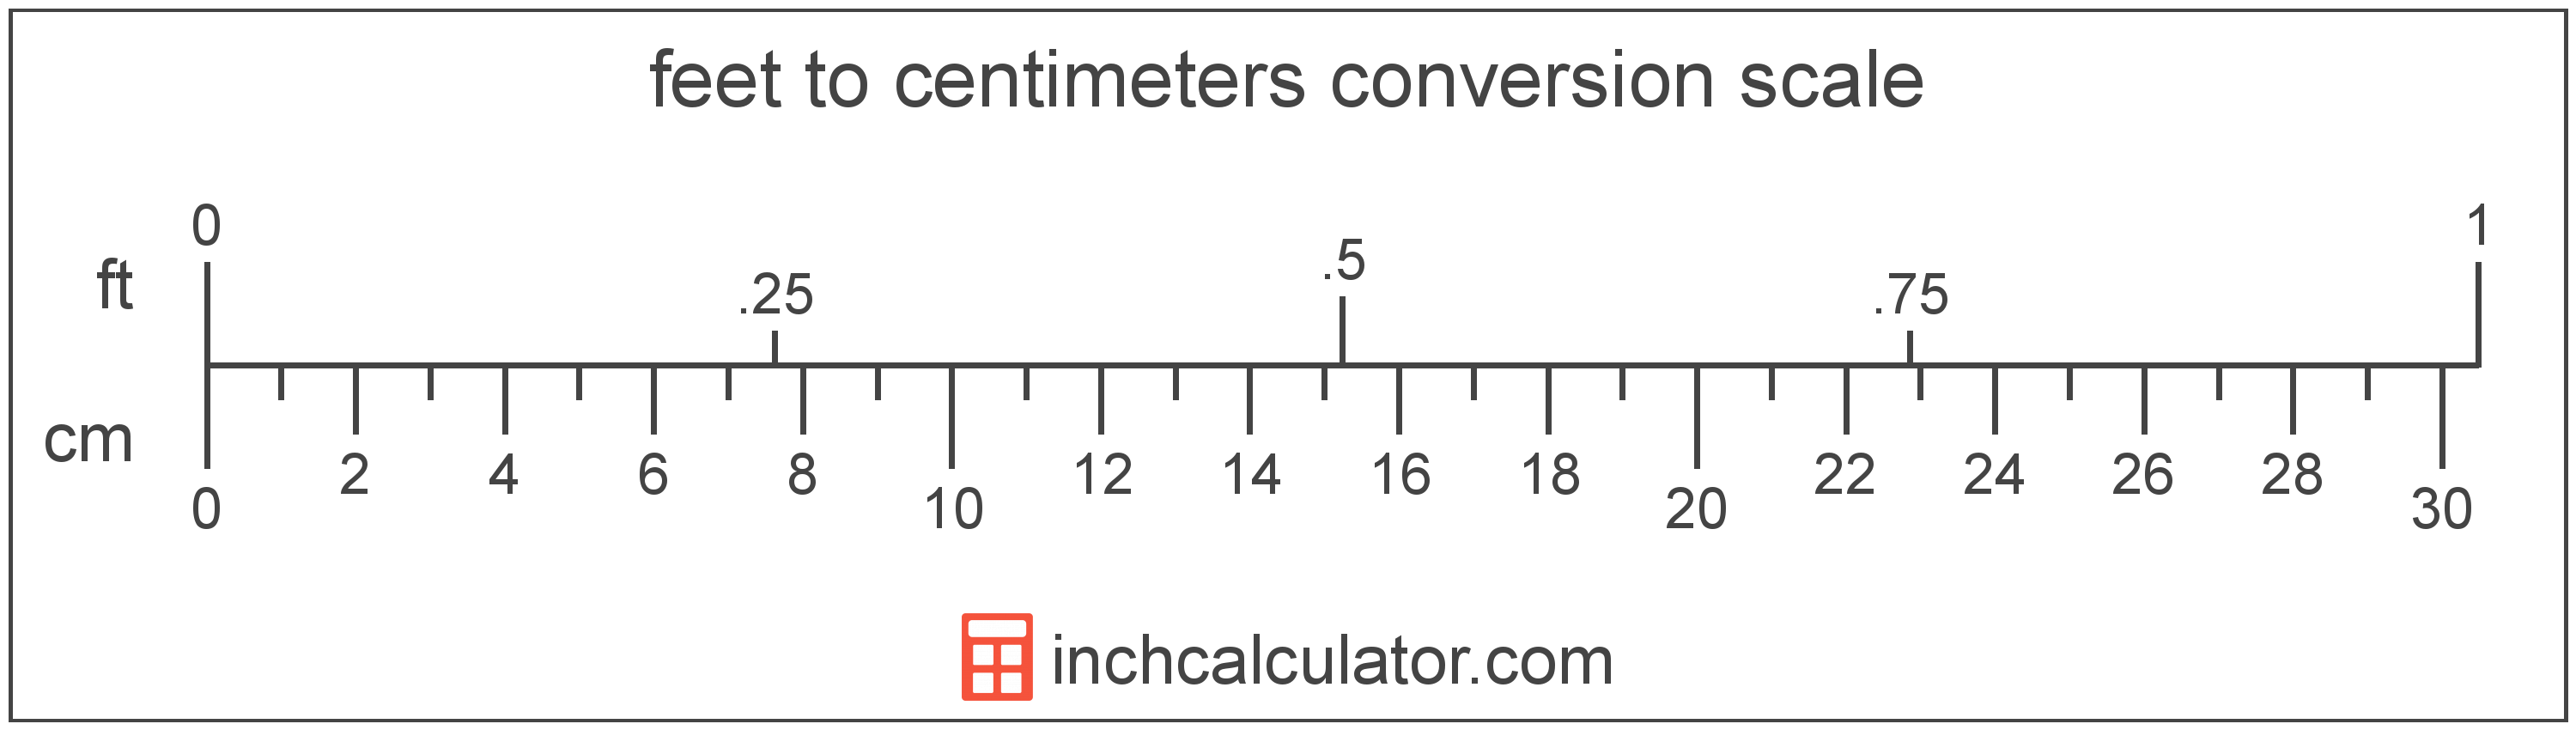 Feet To Centimeters Conversion Ft To Cm